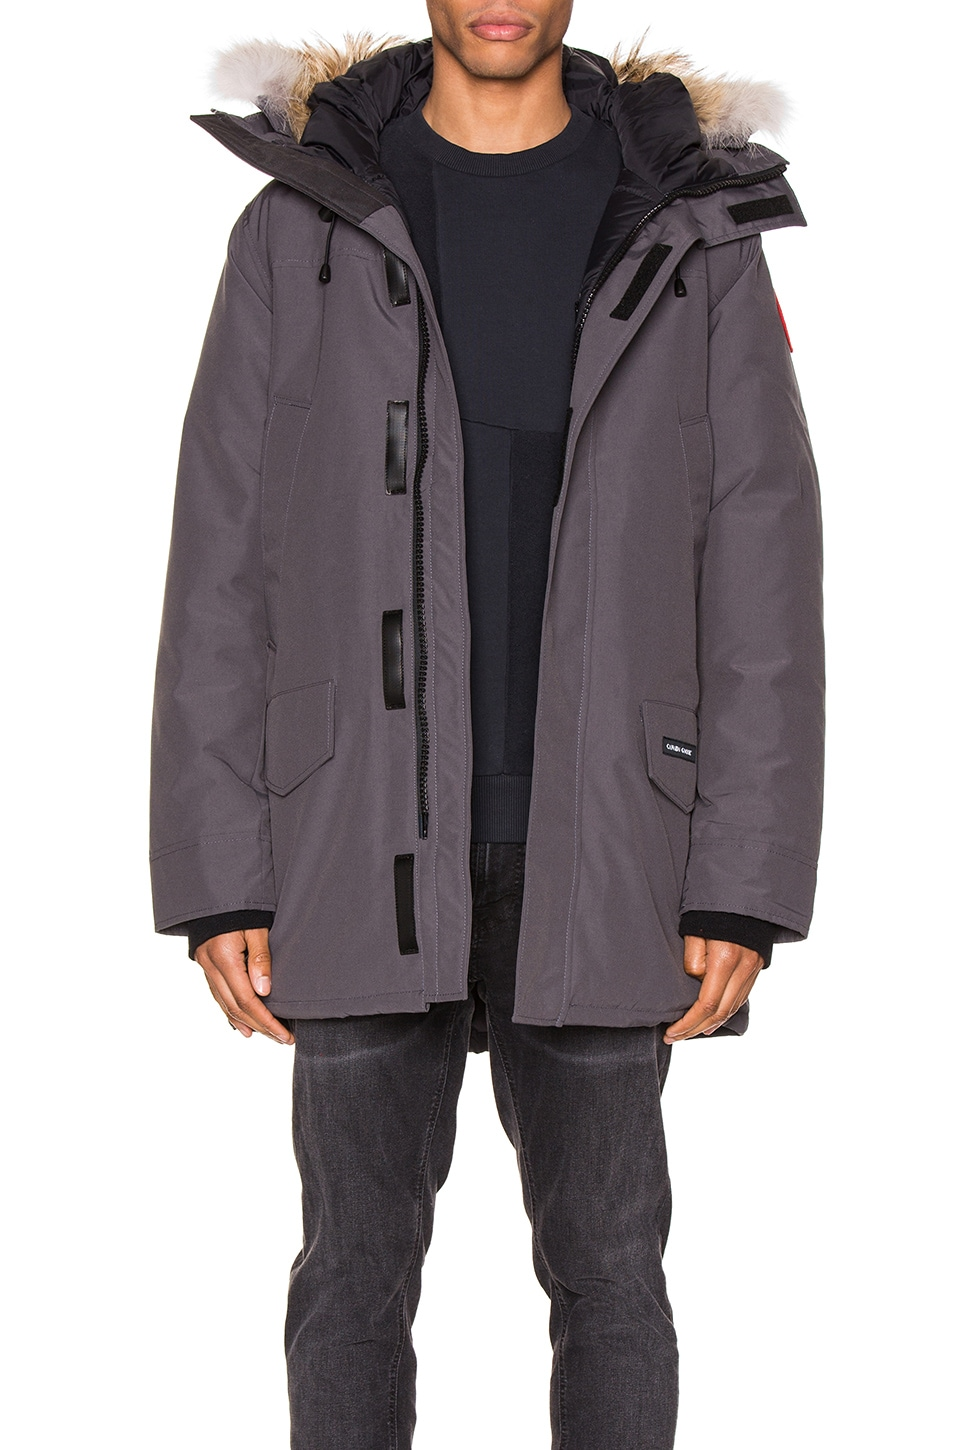 Canada Goose Langford Jacket in Graphite